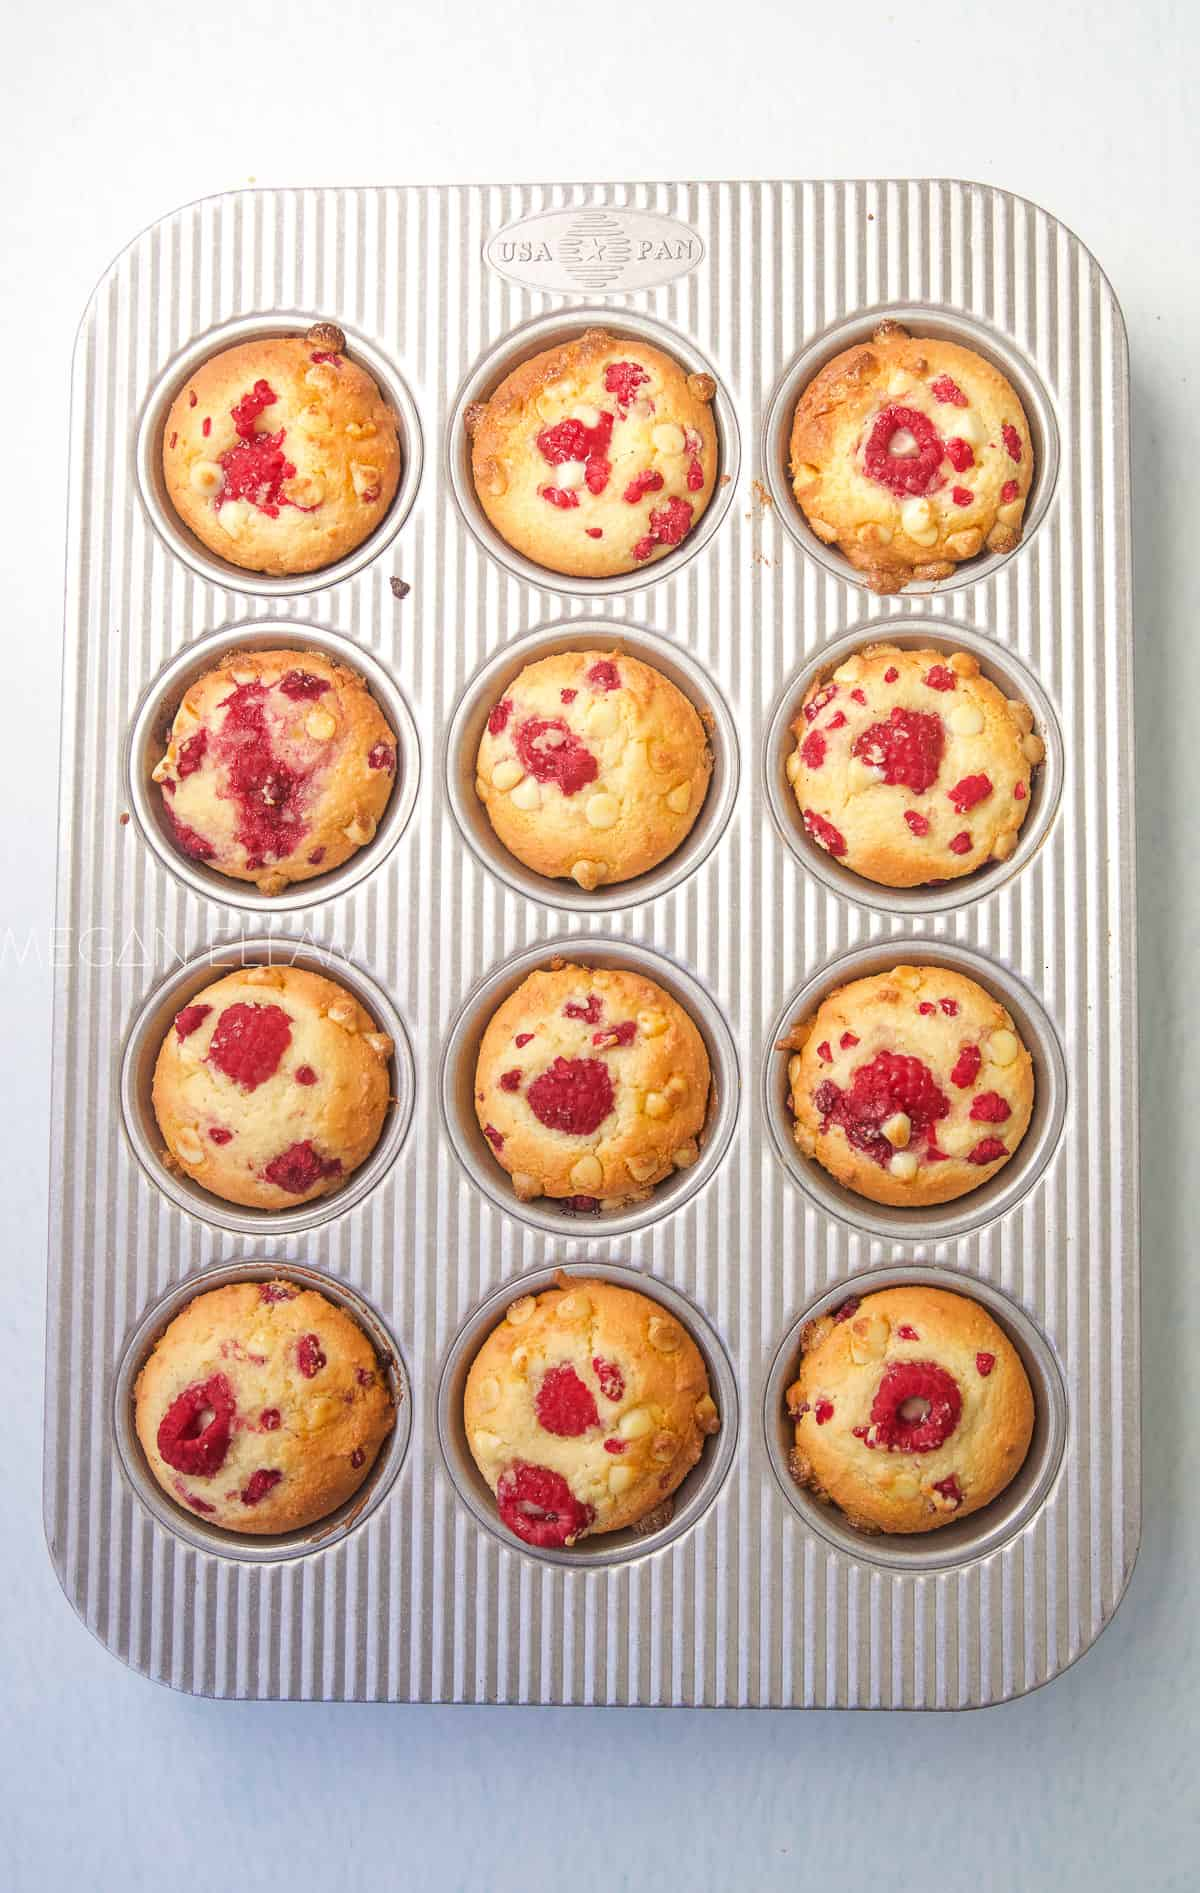 Baked raspberry muffins in a baking tray.